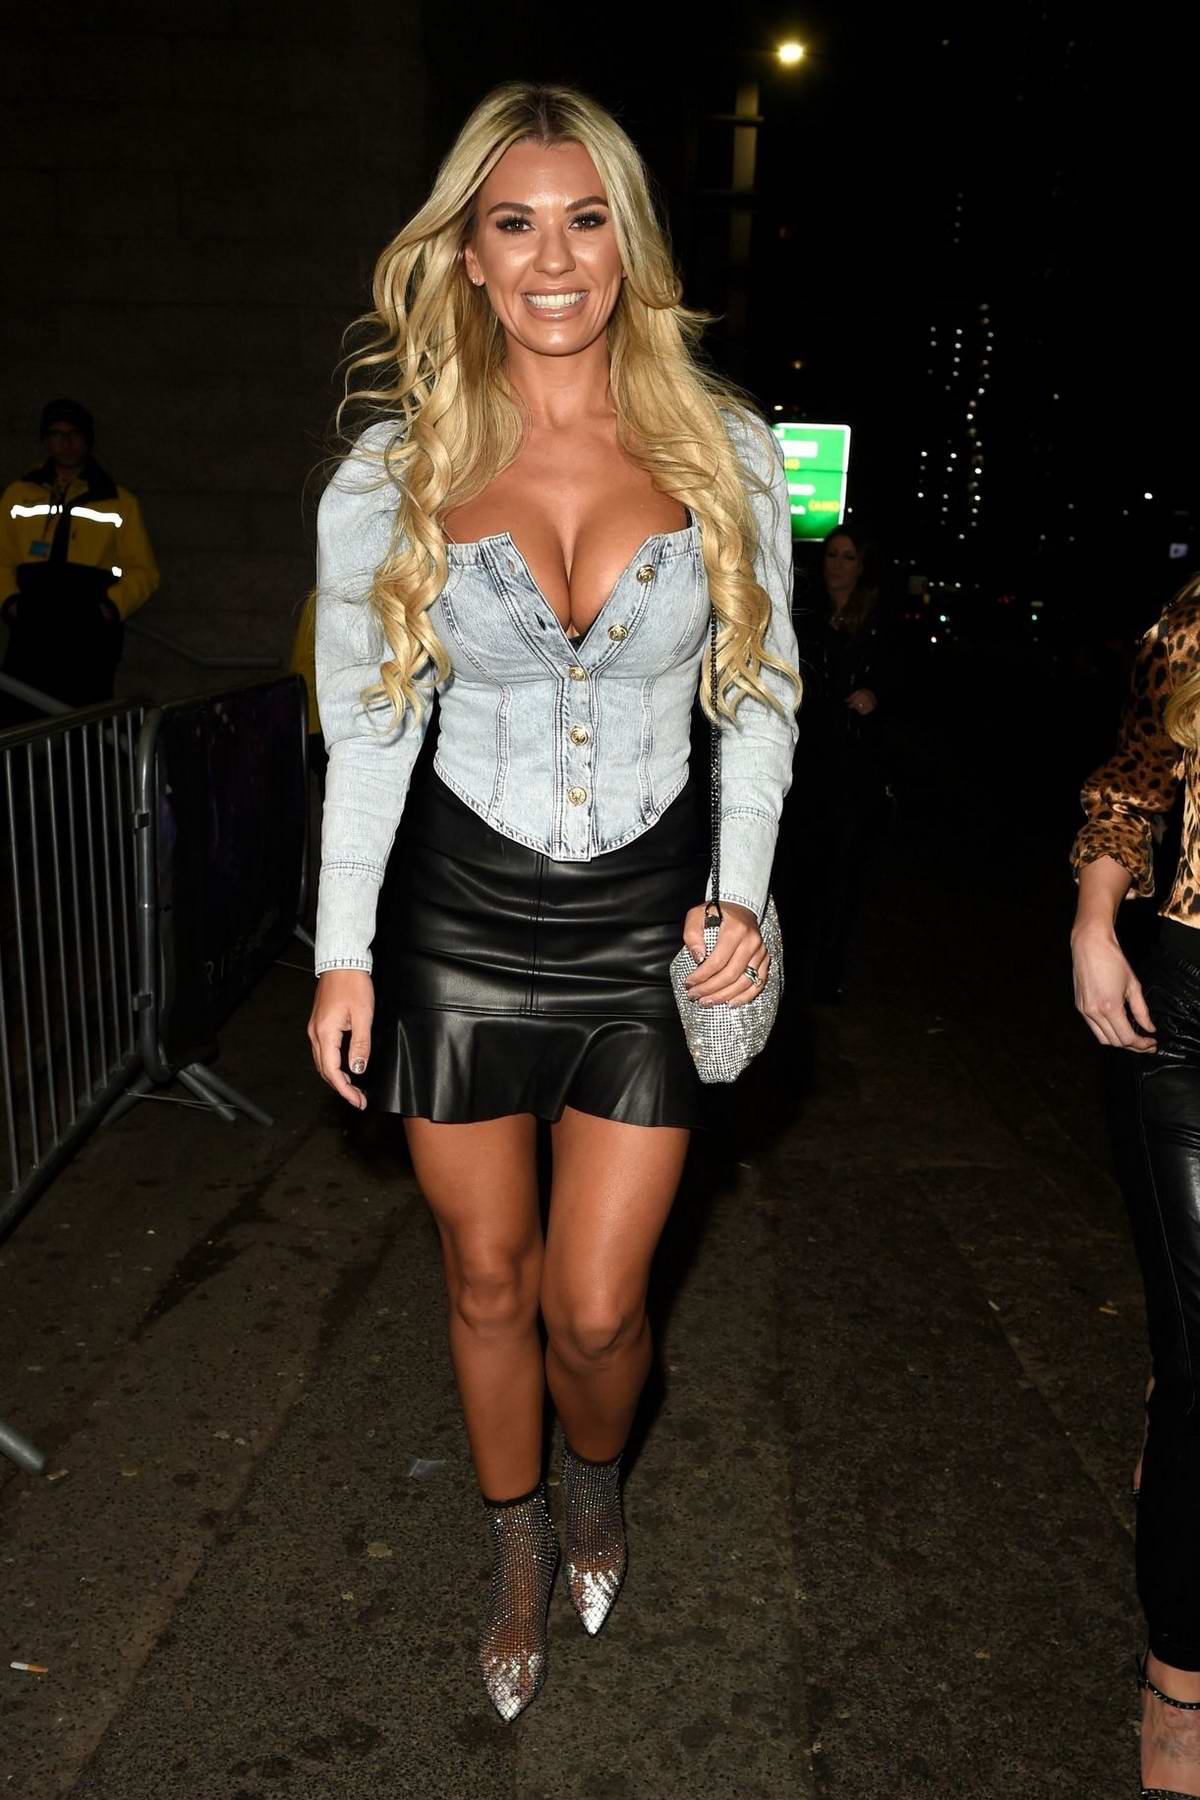 Christine McGuinness is all smiles as she arrives at The Manchester Arena in Manchester, UK